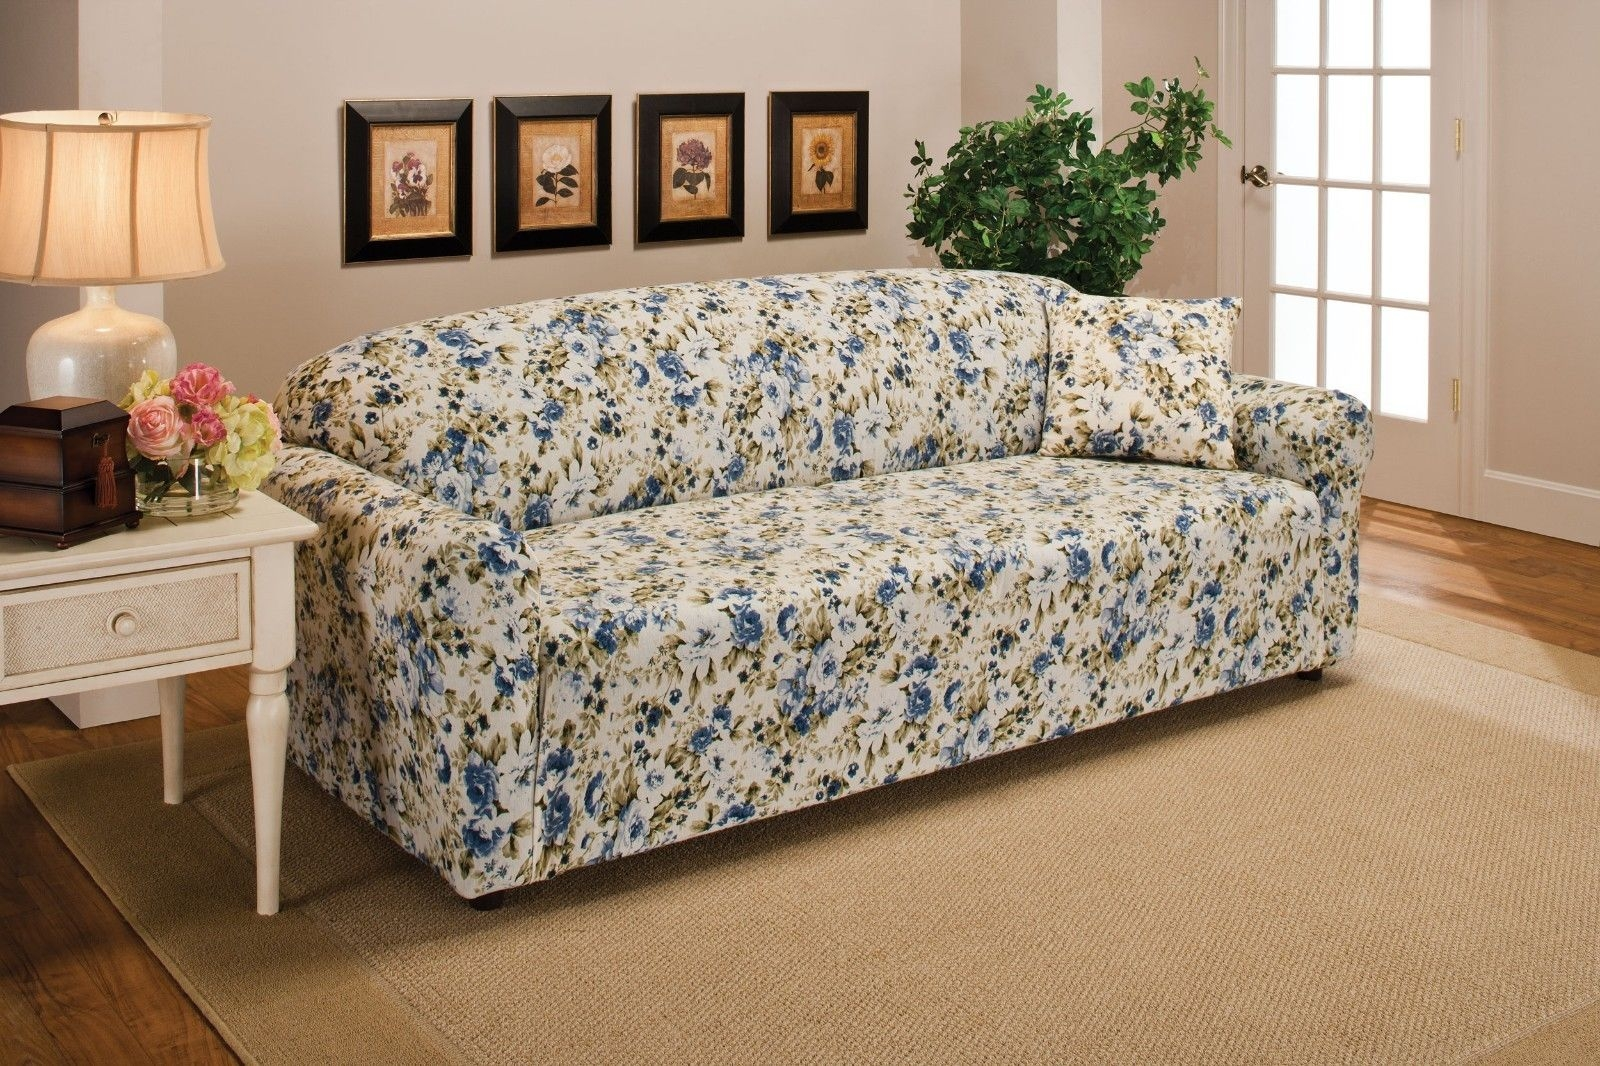 Flower Print Sofa 1970 Floral Sofa Flower Print Couch Suzy Q Within Chintz Floral Sofas (Image 10 of 15)